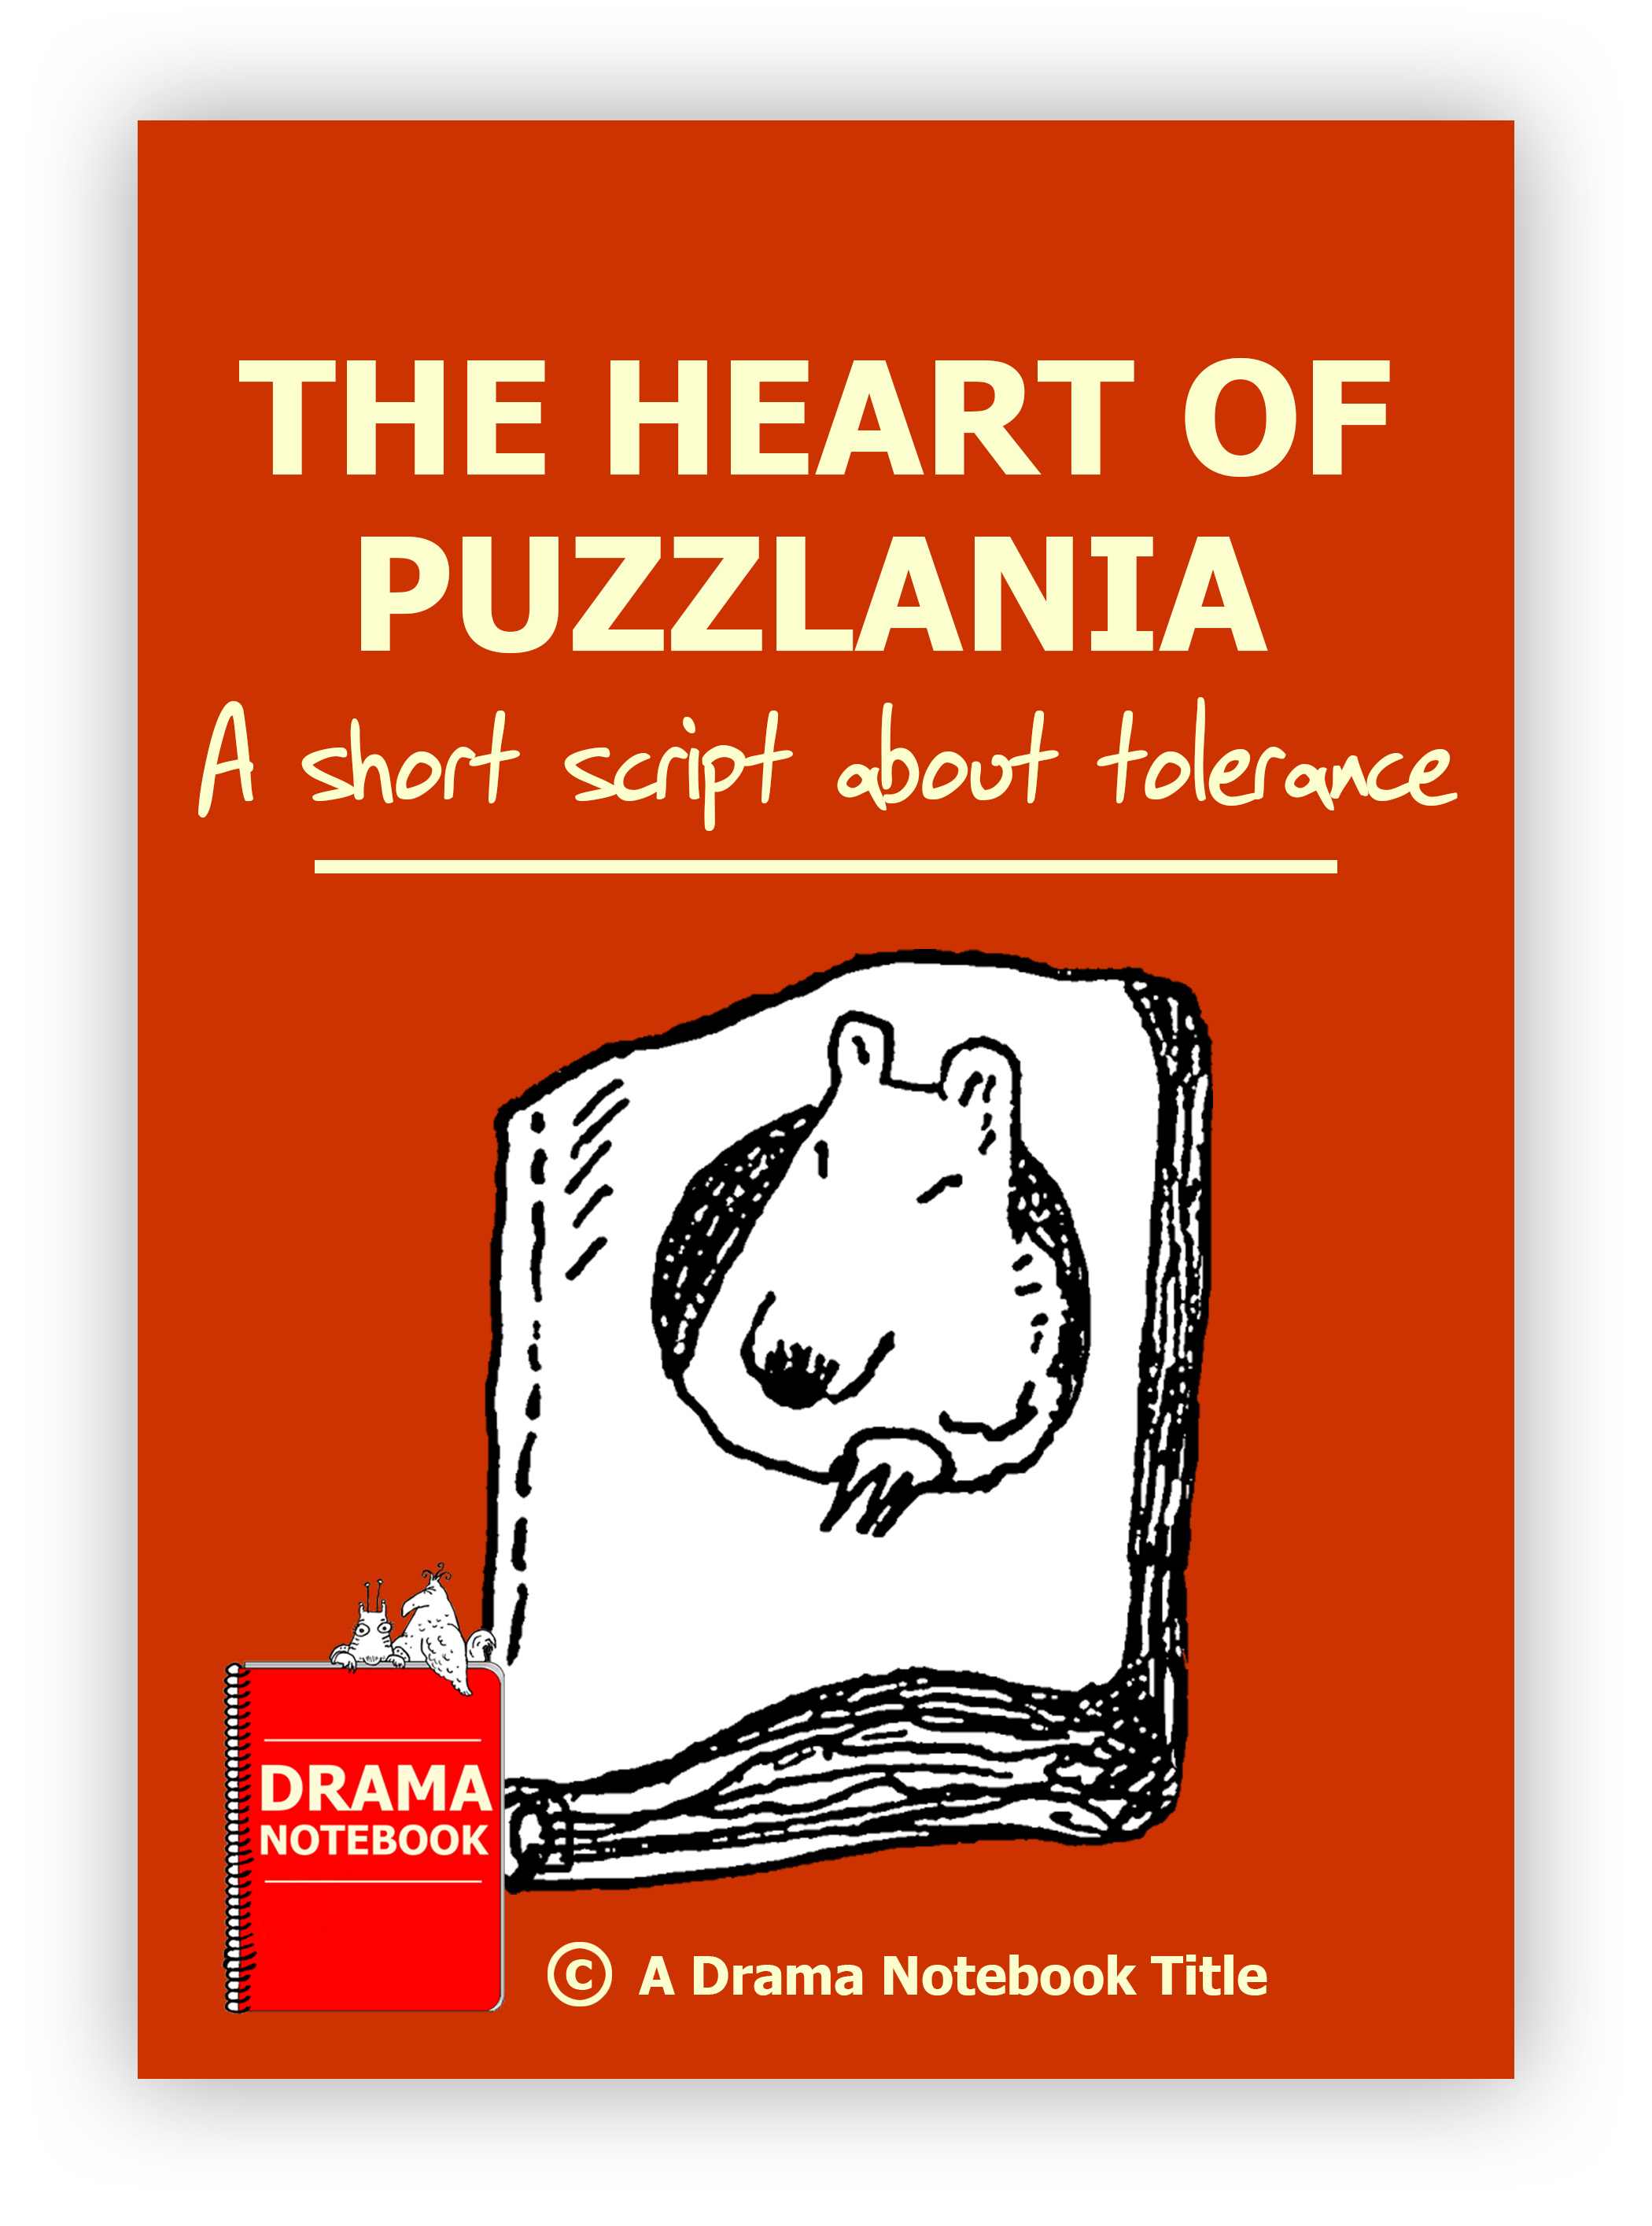 The Heart of Puzzlania